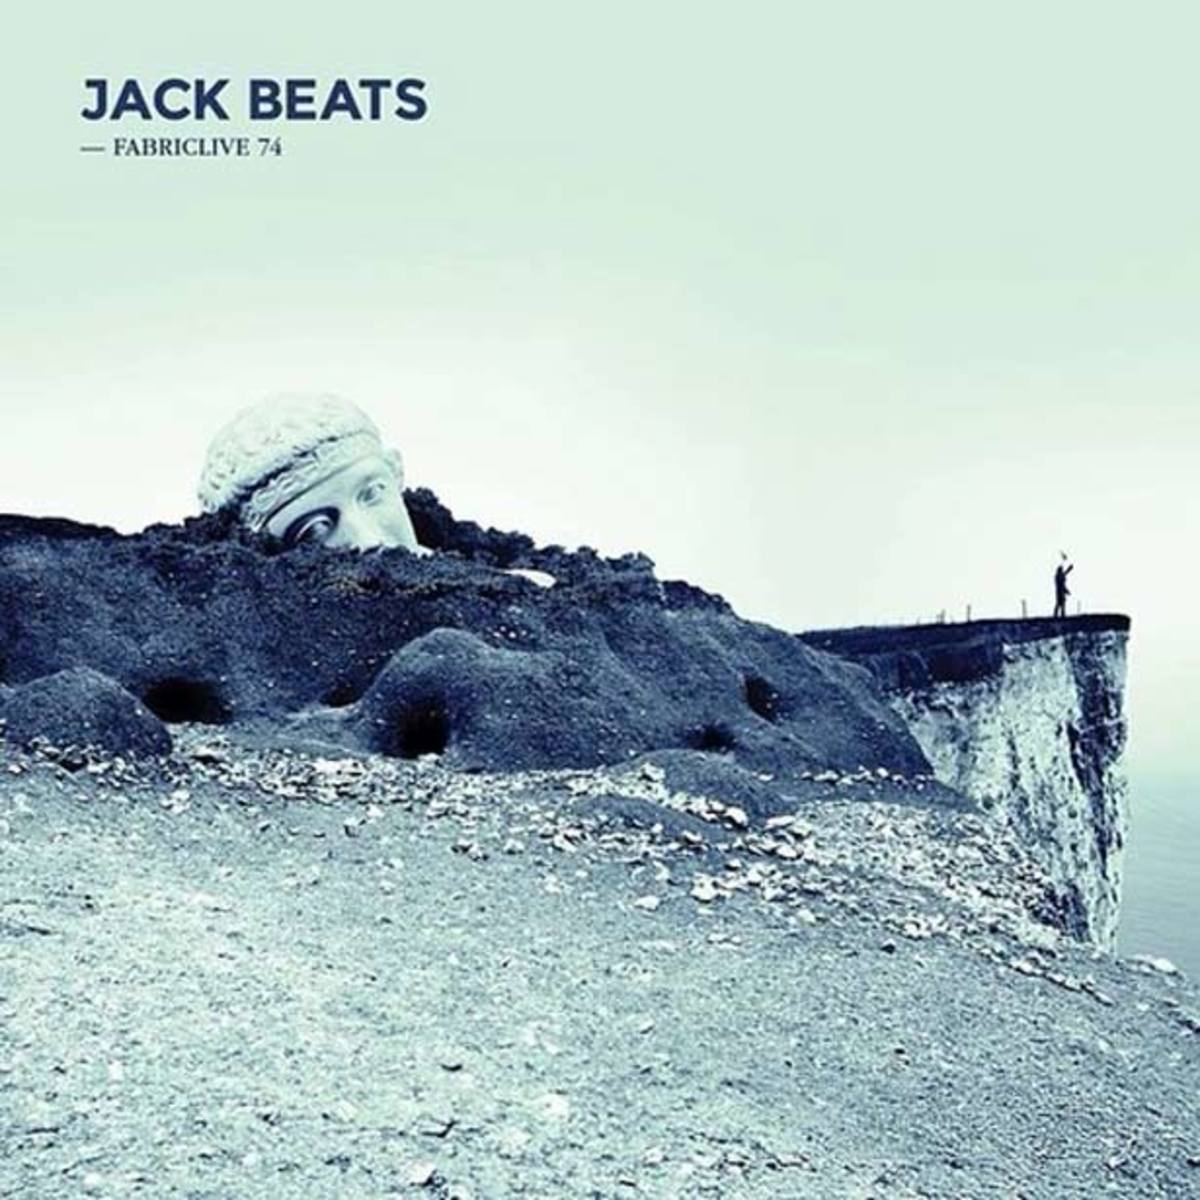 Make FABRICLIVE 74: Jack Beats Your Go To Mix For Mid Intensity Workouts